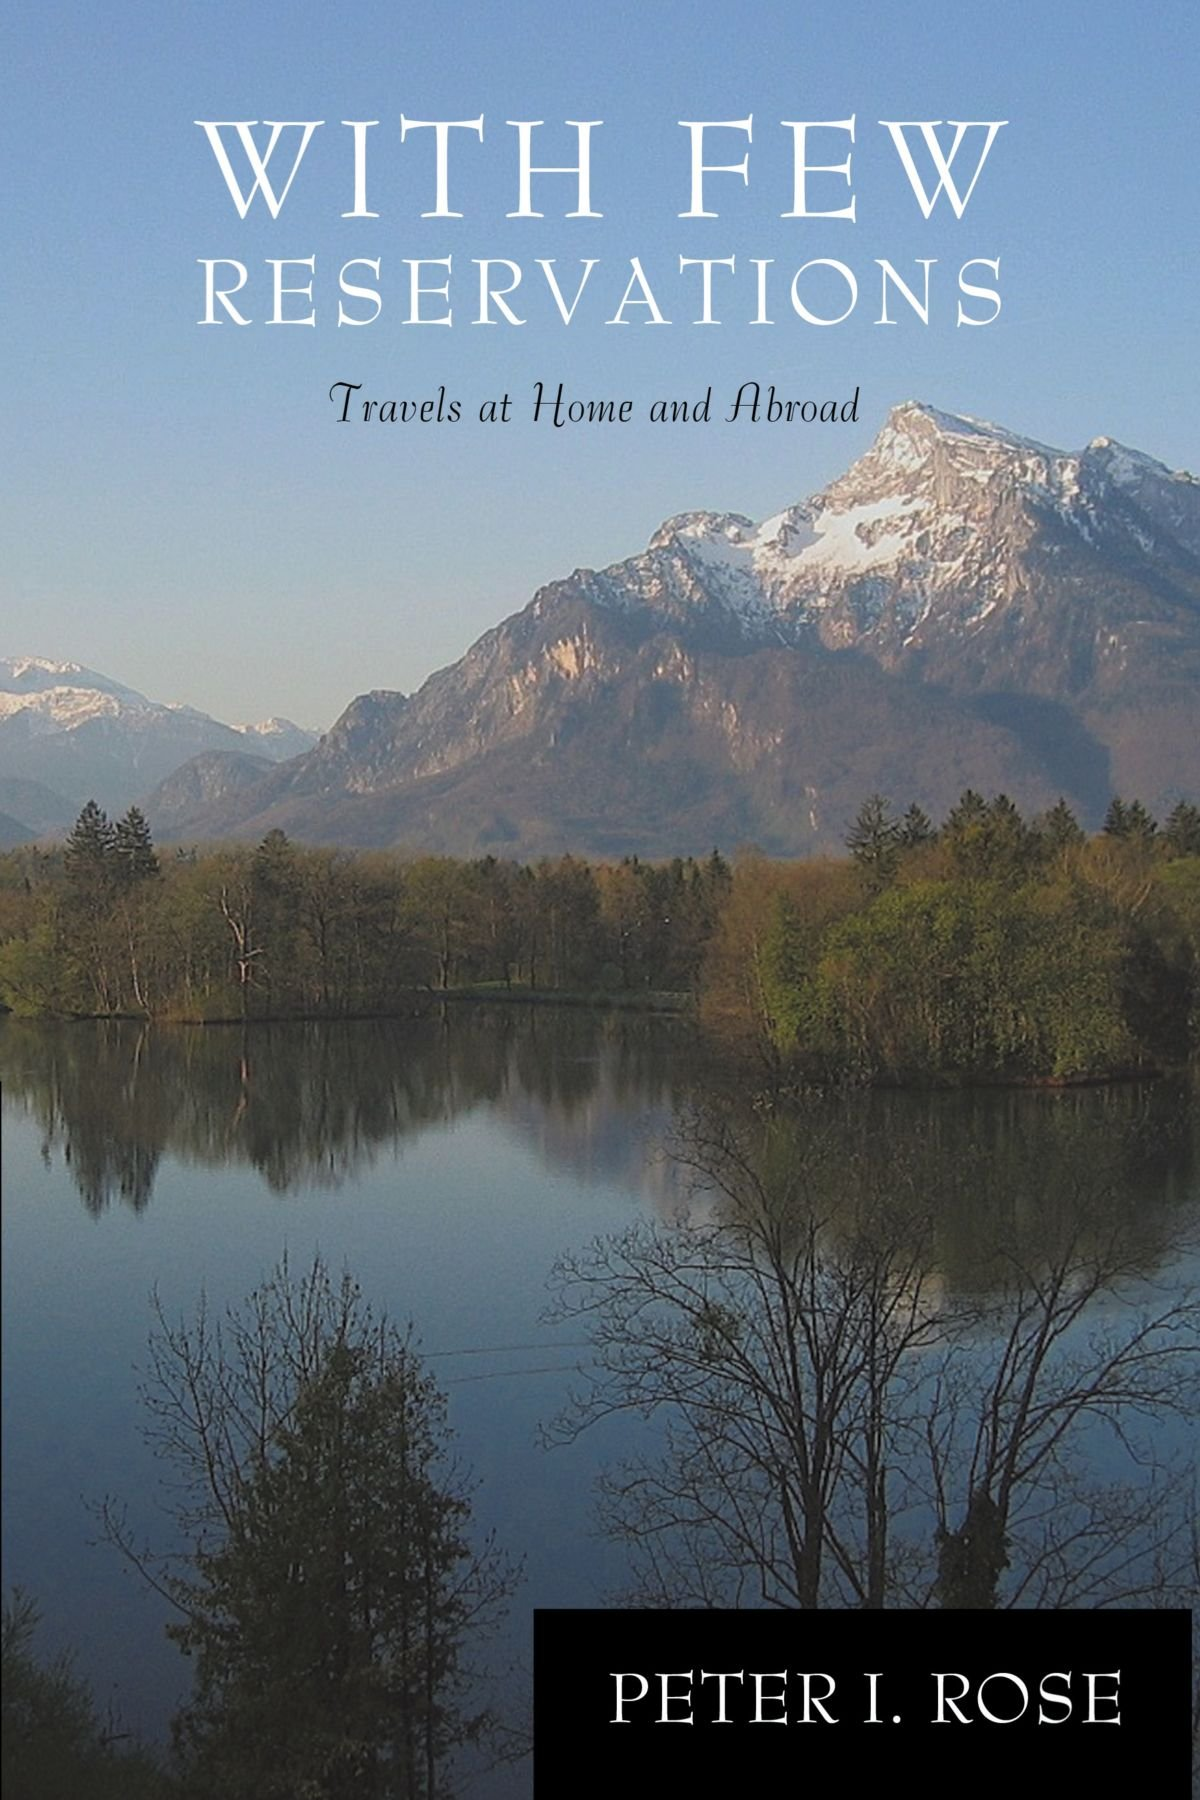 With Few Reservations: Travels at Home and Abroad PDF